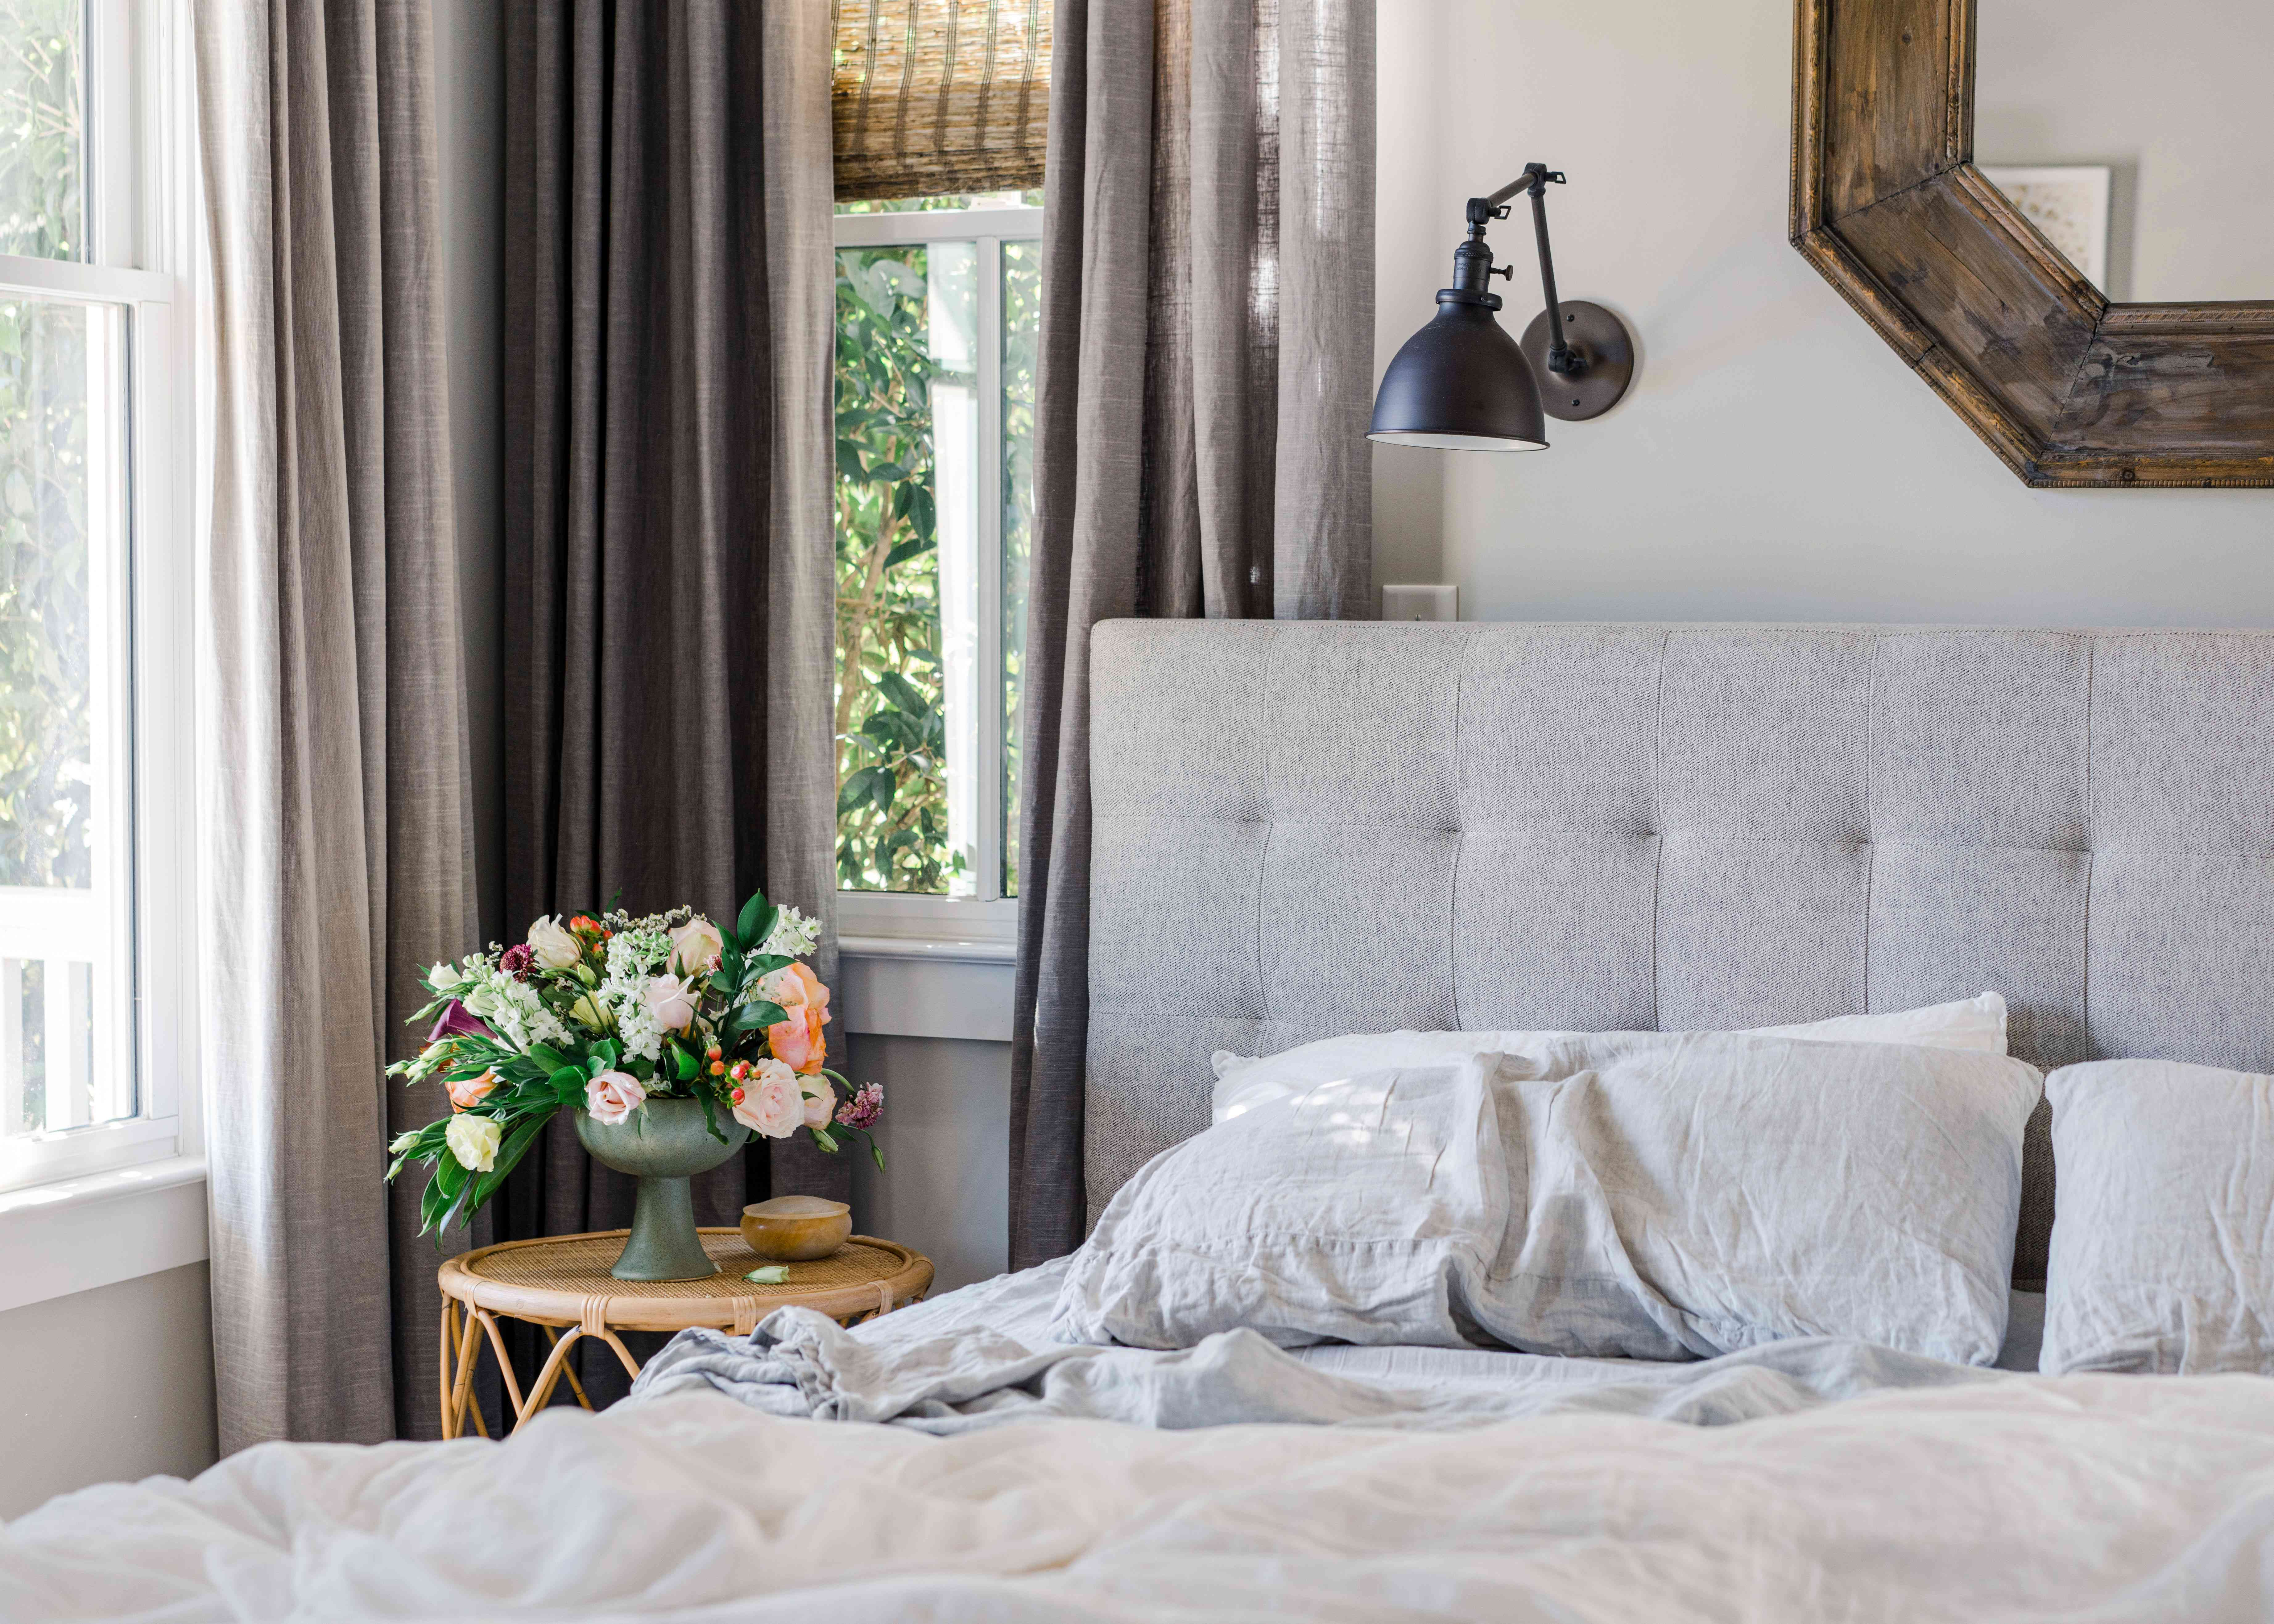 linen curtains in a bedroom